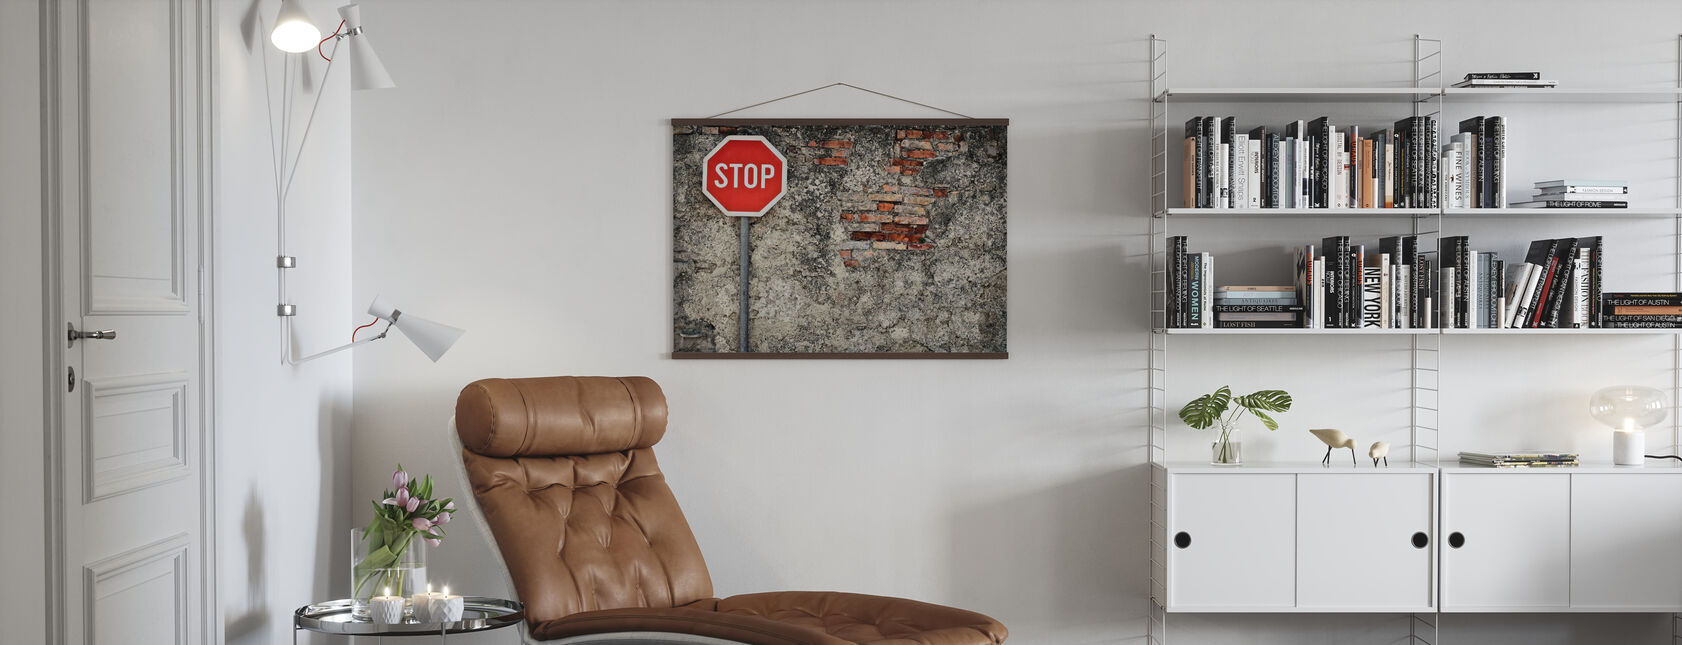 Stop Sign Against Grungy Wall - Poster - Living Room